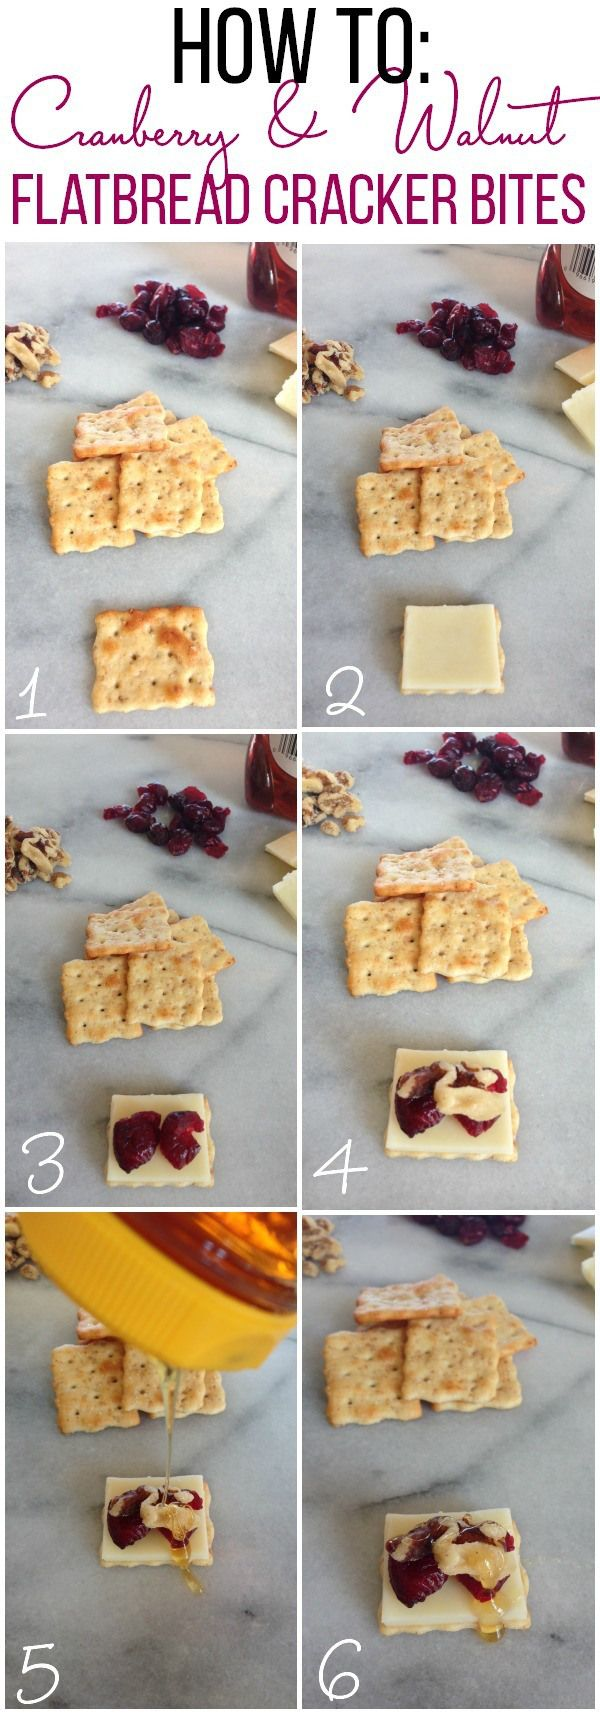 Easy Appetizers For Entertaining: Cranberry and Walnut Flatbread Cracker Bites with Honey drizzle in six easy steps. Recipe via @foodfolksandfun. Ways To Wow AD